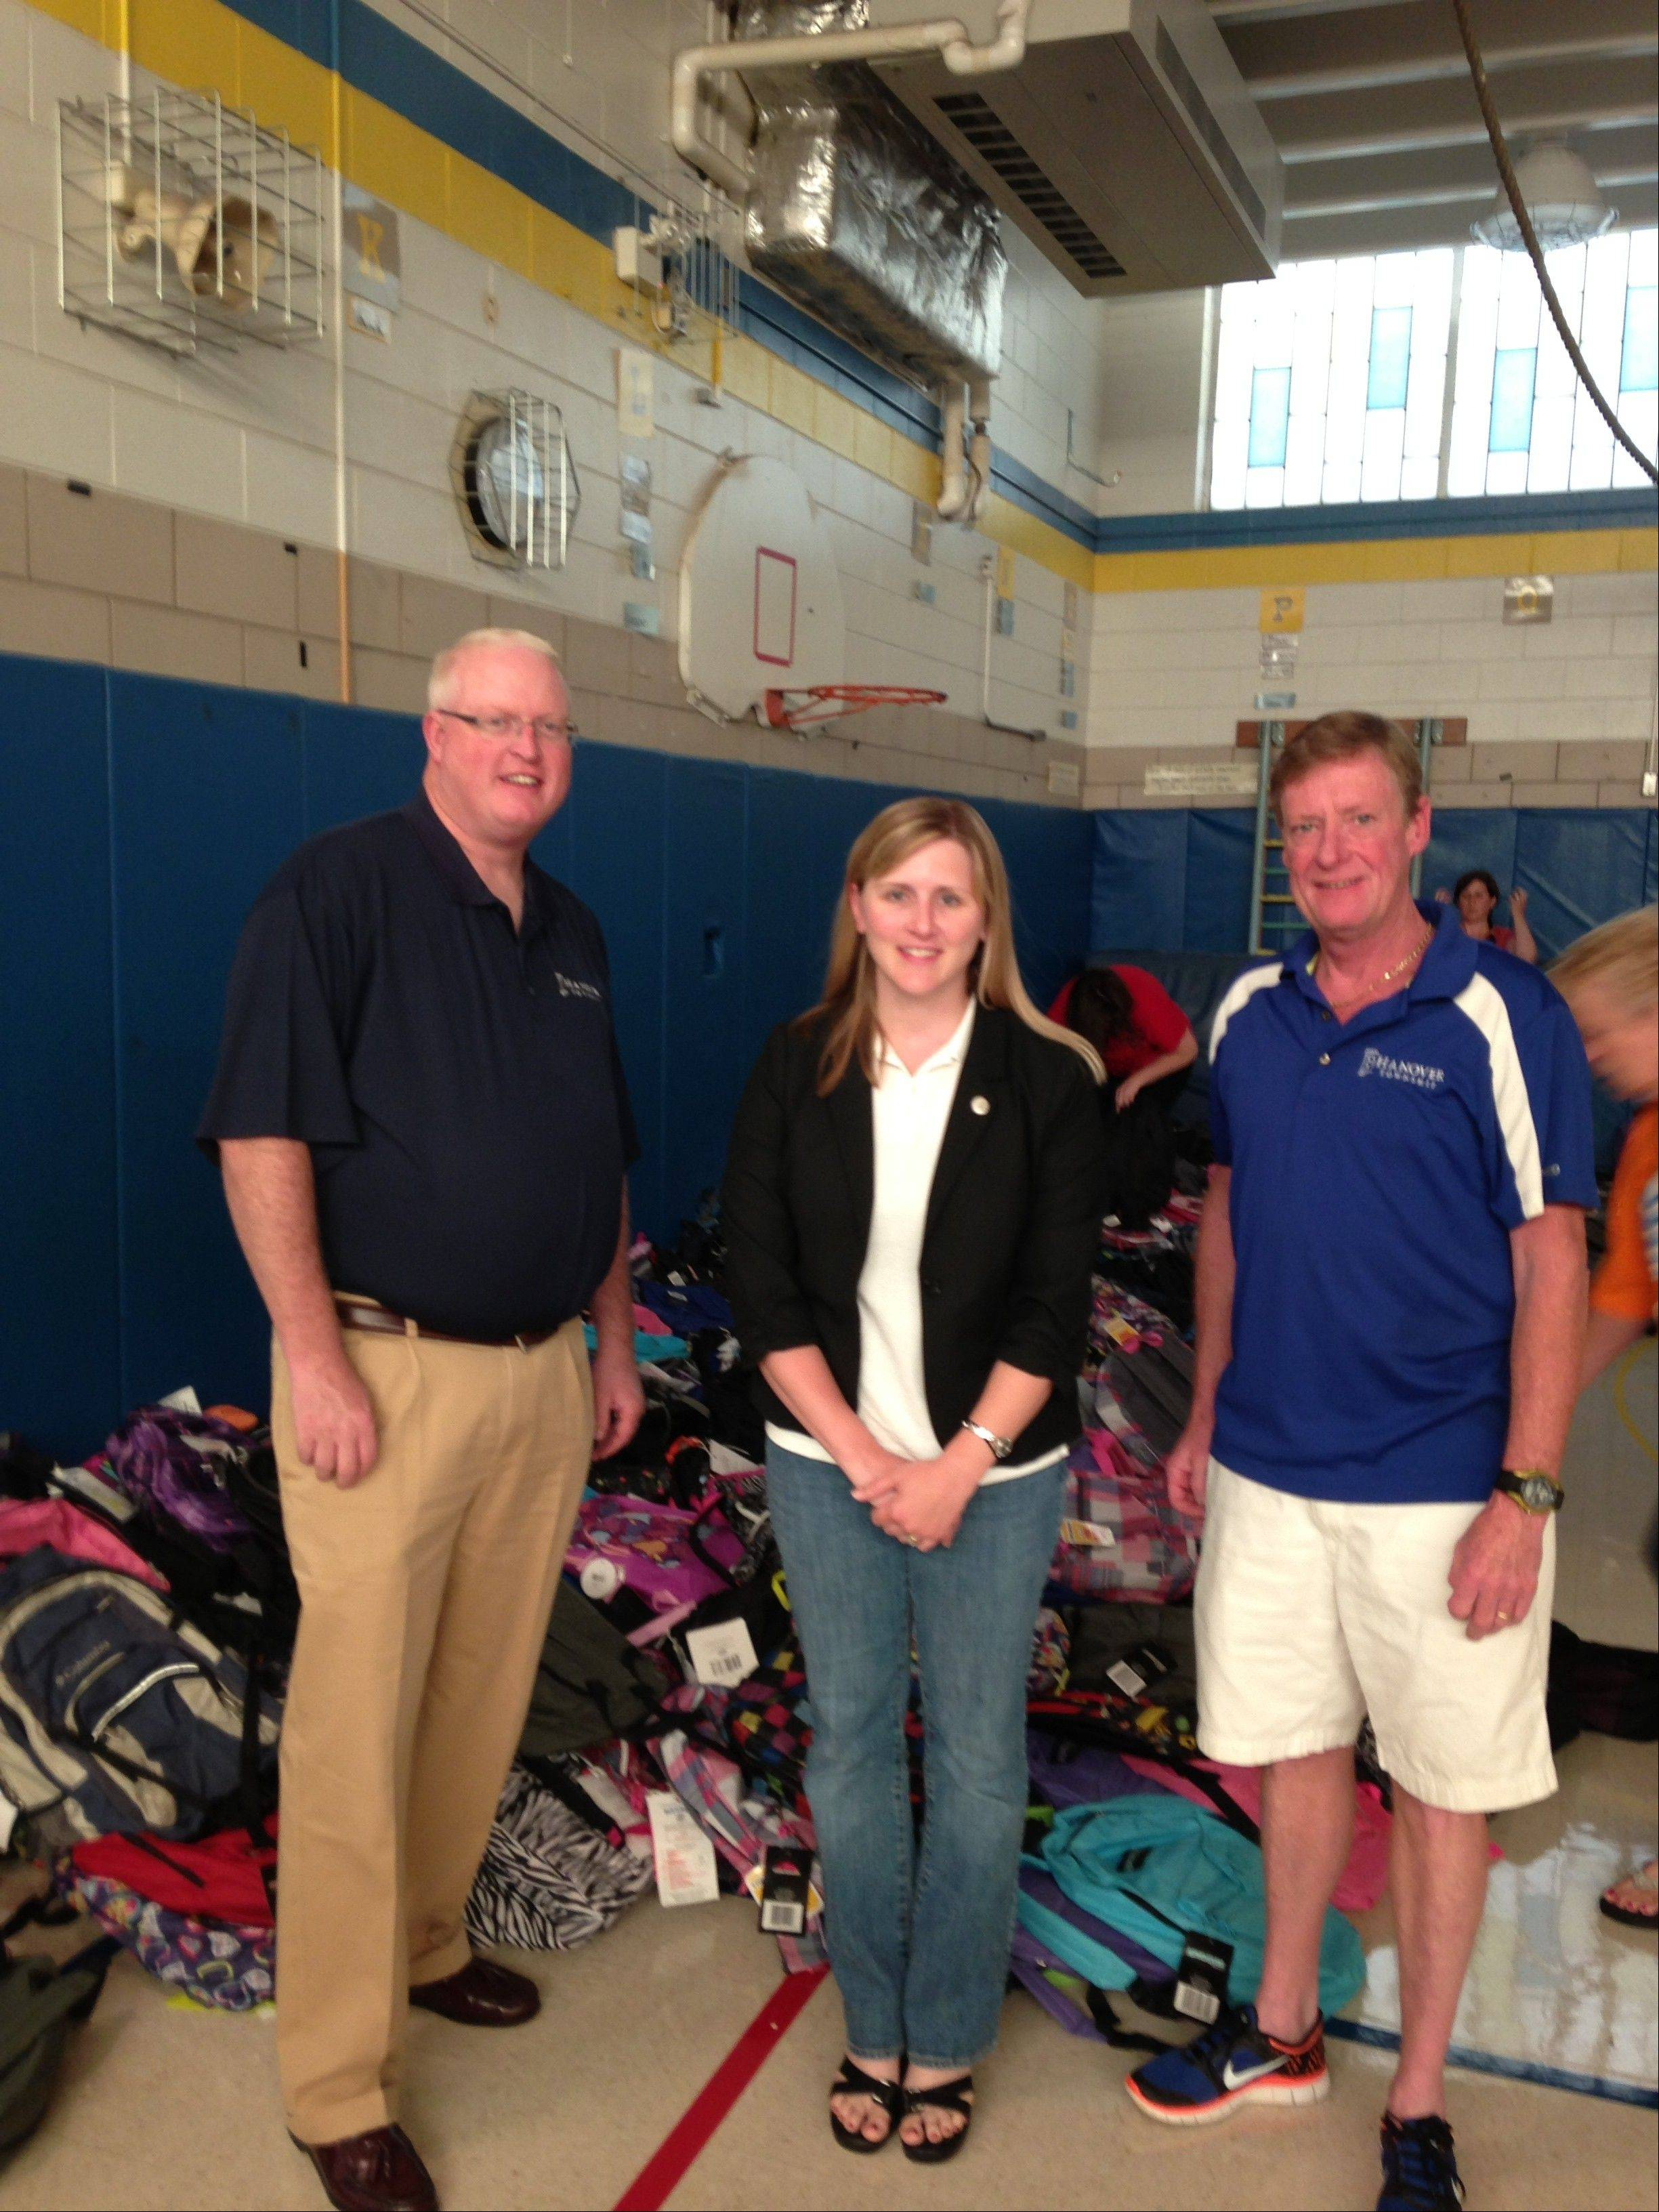 Hanover Township Supervisor Brian McGuire, AT&T representative Jaci Kator and Hanover Township Trustee Howard Krick were part of the group that distributed more than 1,000 backpacks to needy families last week.